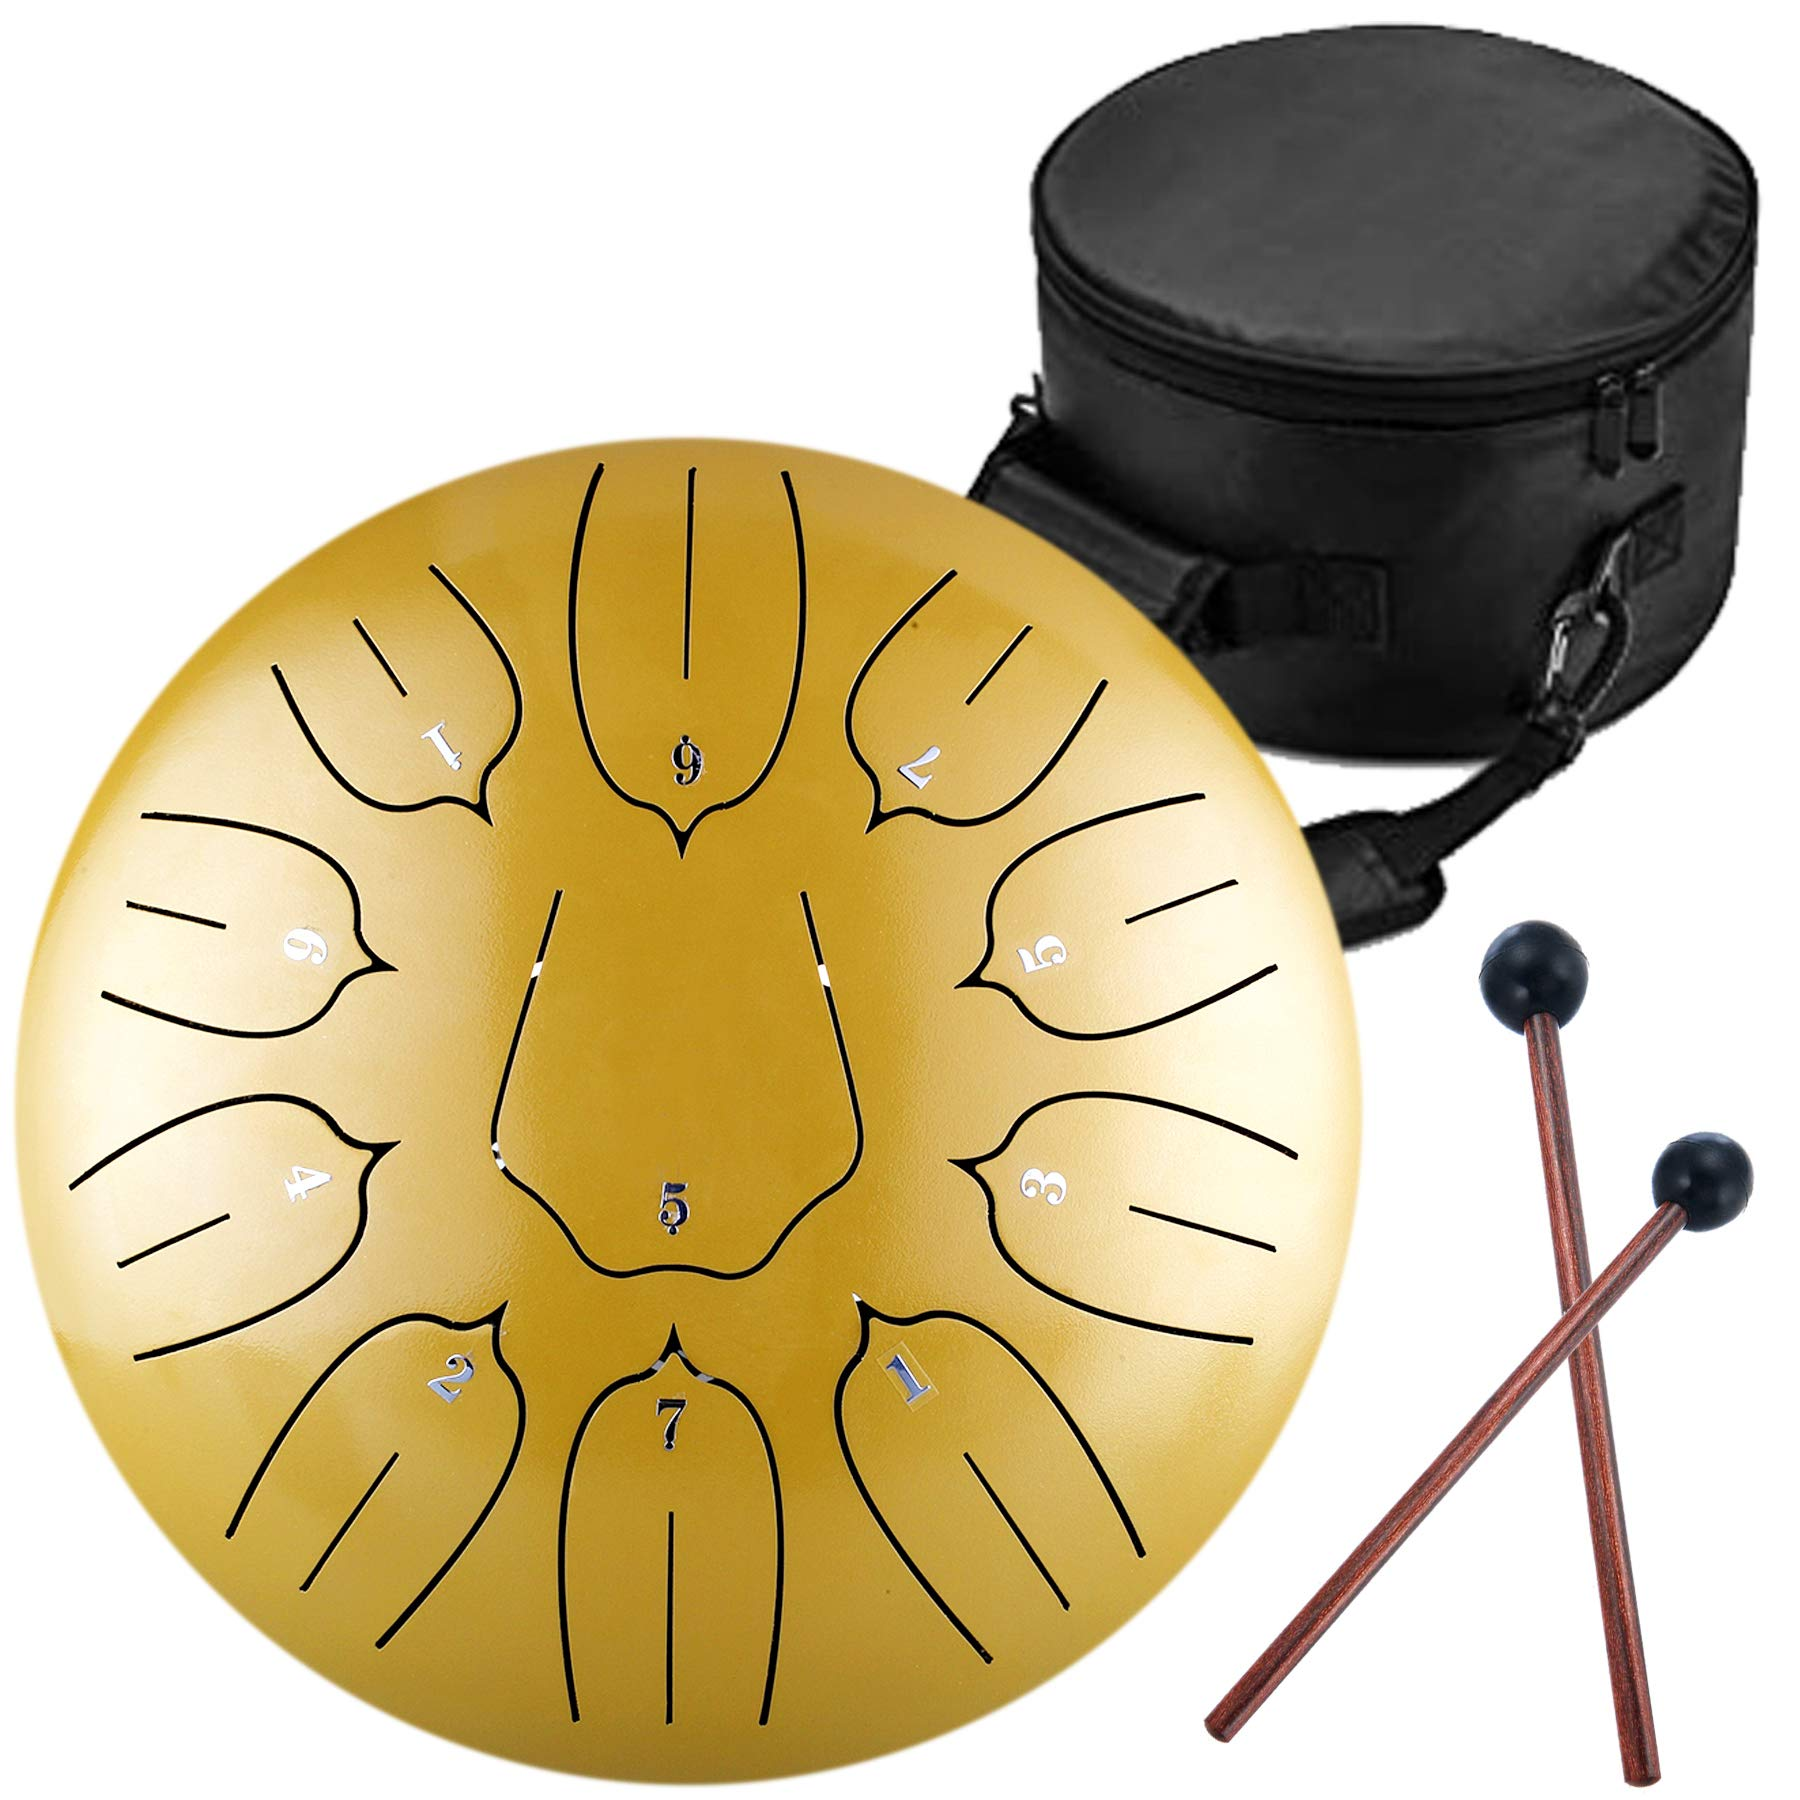 10 Inch 11 Notes Steel Tongue Drum Highest Quality D Major Percussion Hang Drum Instrument Padded Travel Bag and Mallets Included Yoga Meditation Music Therapy Lotus Gold by KELEODY (Image #1)